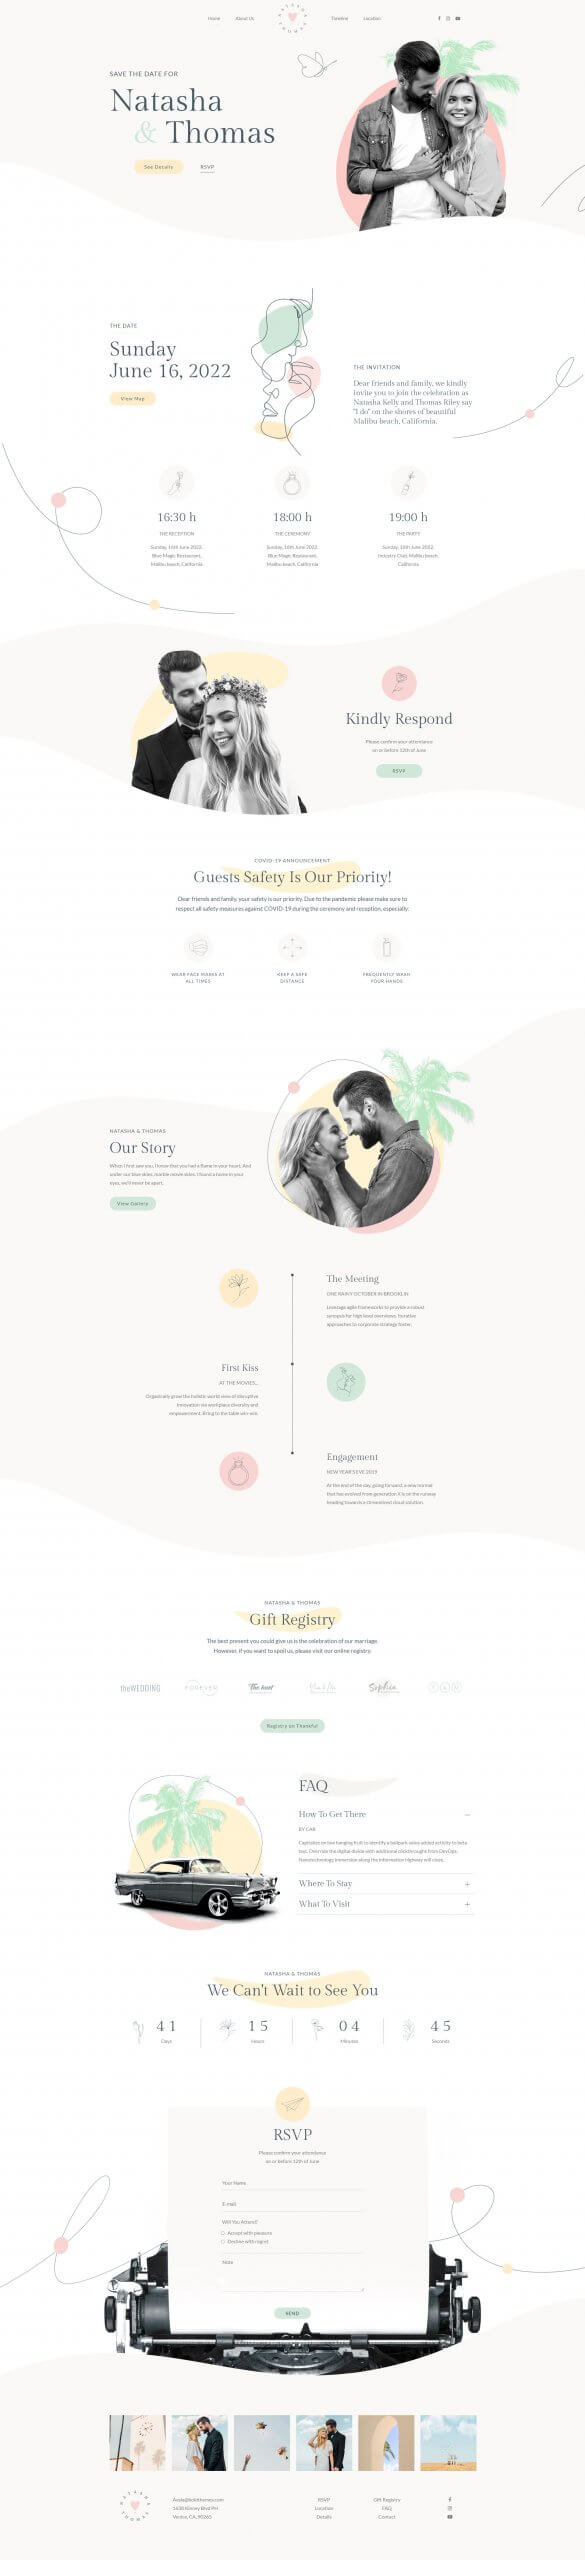 http://avala.bold-themes.com/wp-content/uploads/2021/02/Summer-Home-04-scaled.jpg